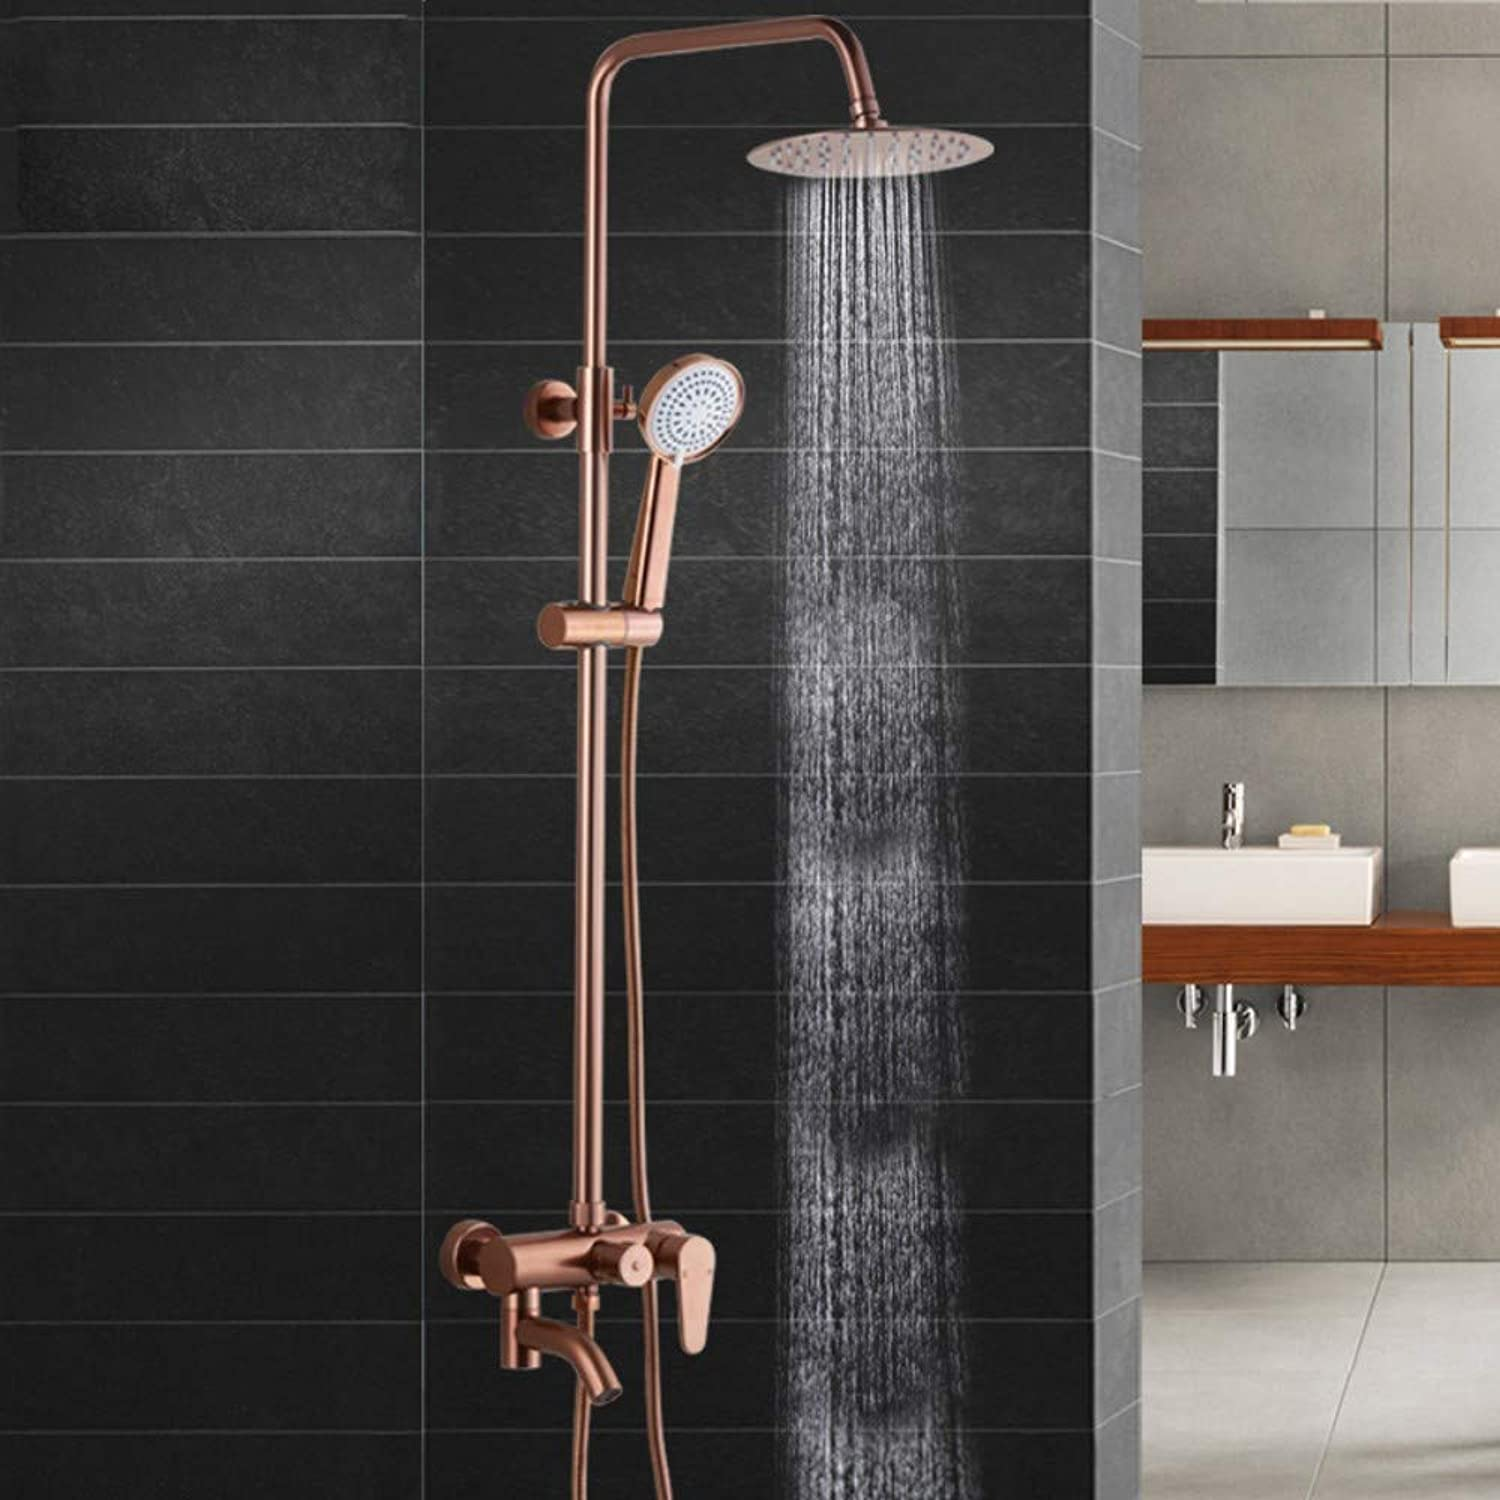 Space Aluminum gold Shower Set Lifting Pressurized Constant Temperature Multi-Function Wall-Mounted Shower pink gold.